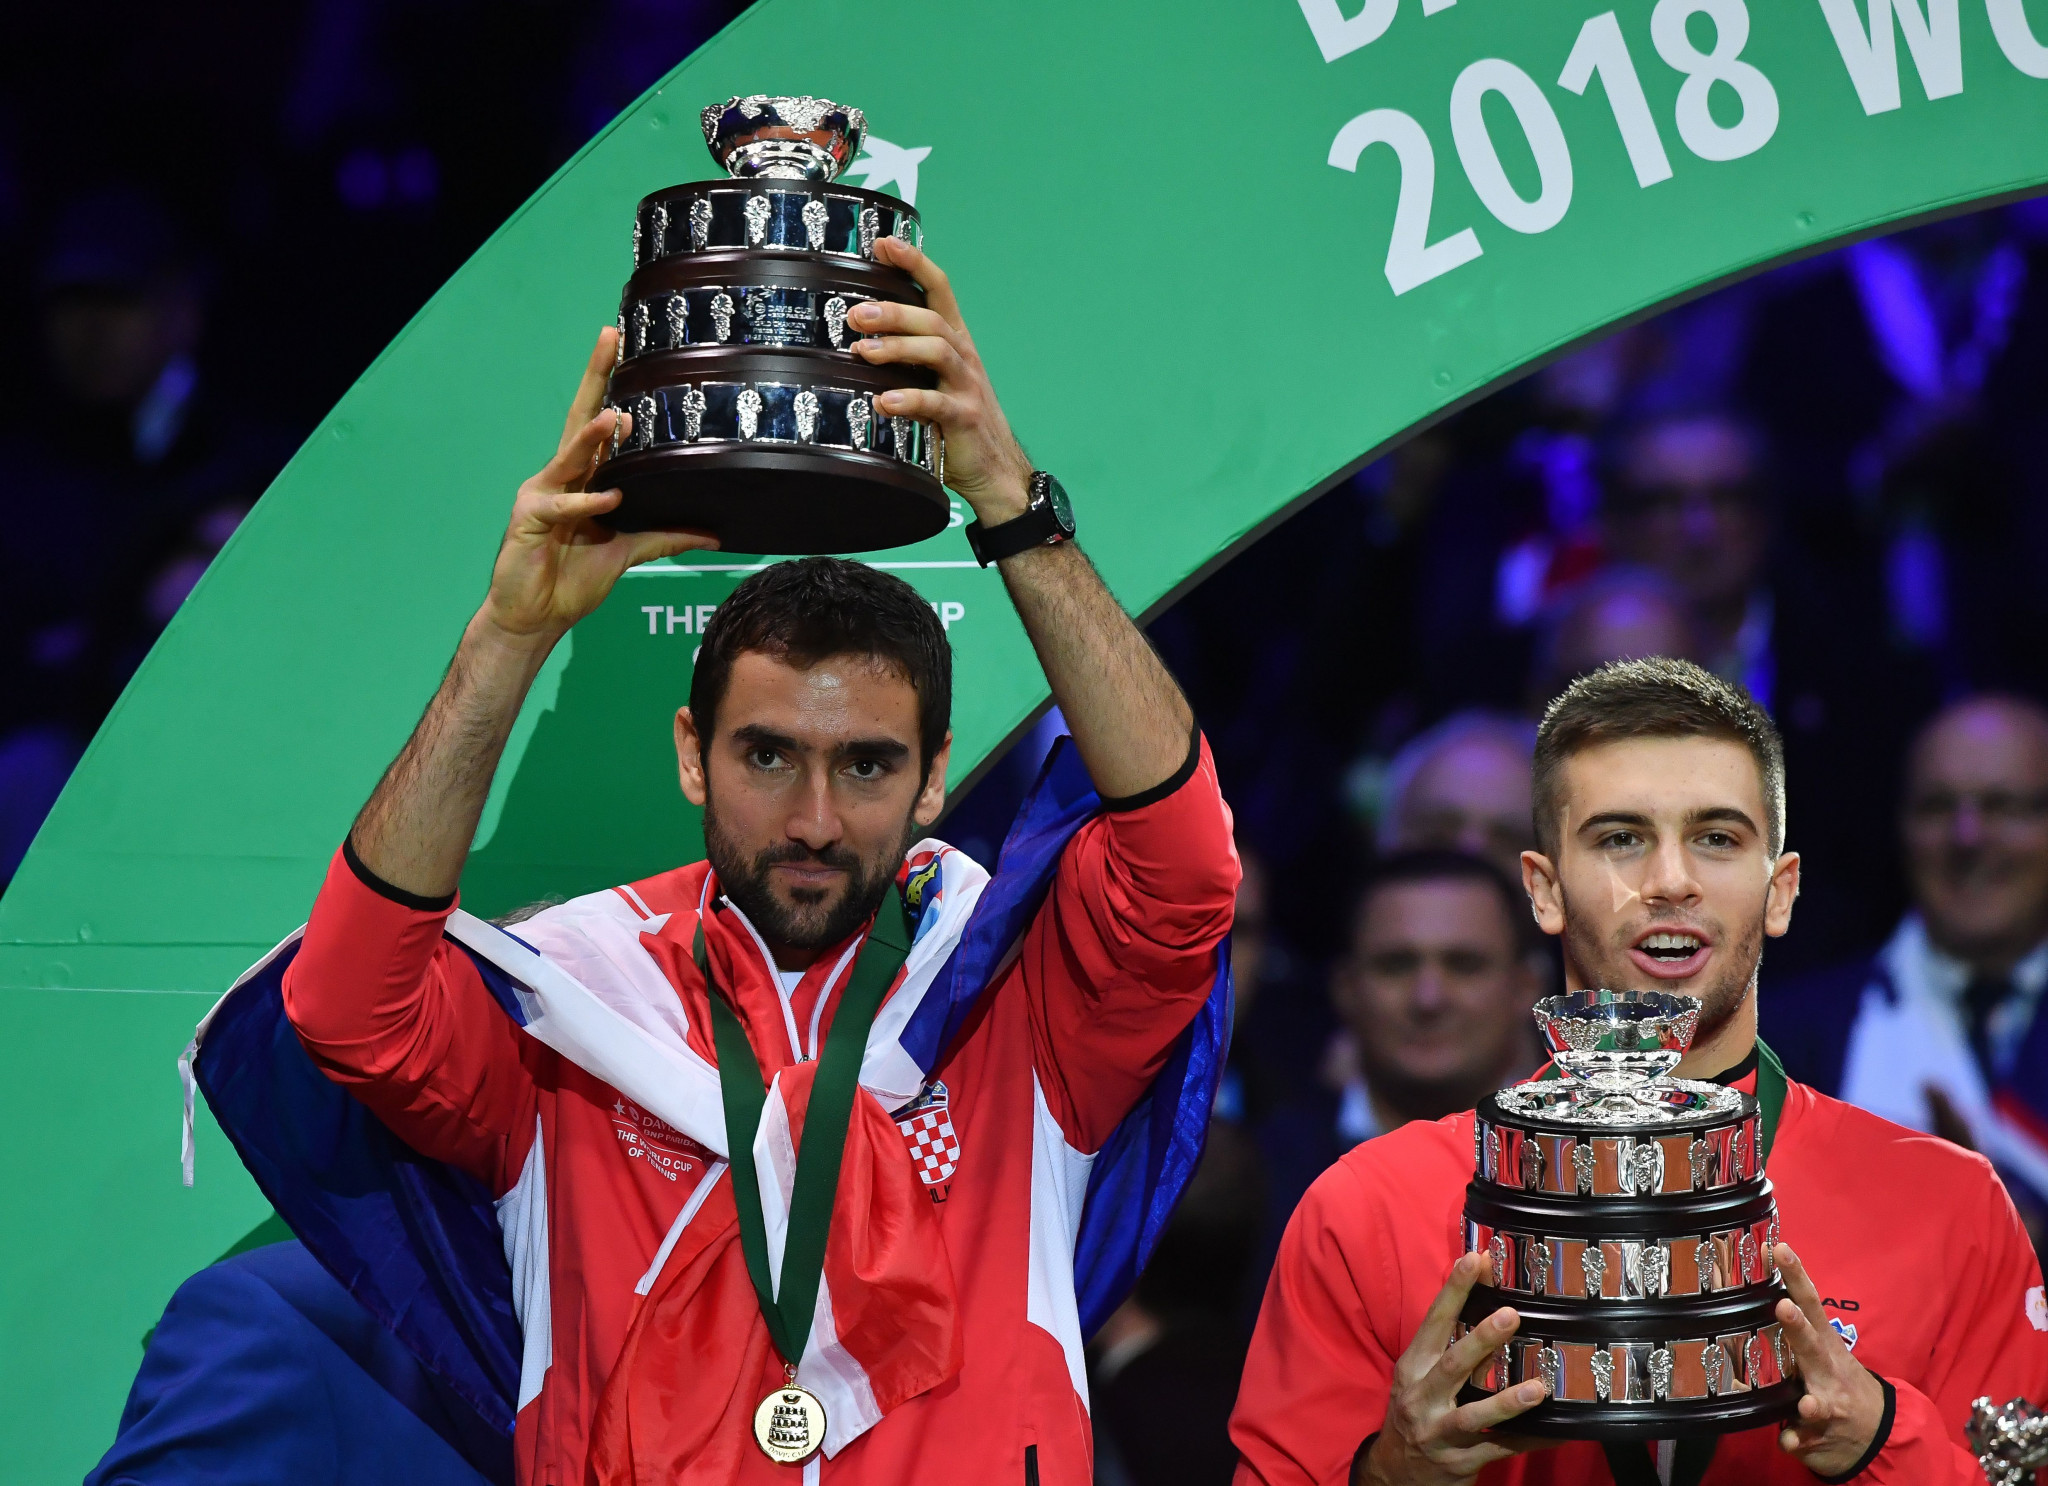 Schedule confirmed for Davis Cup Finals in Madrid